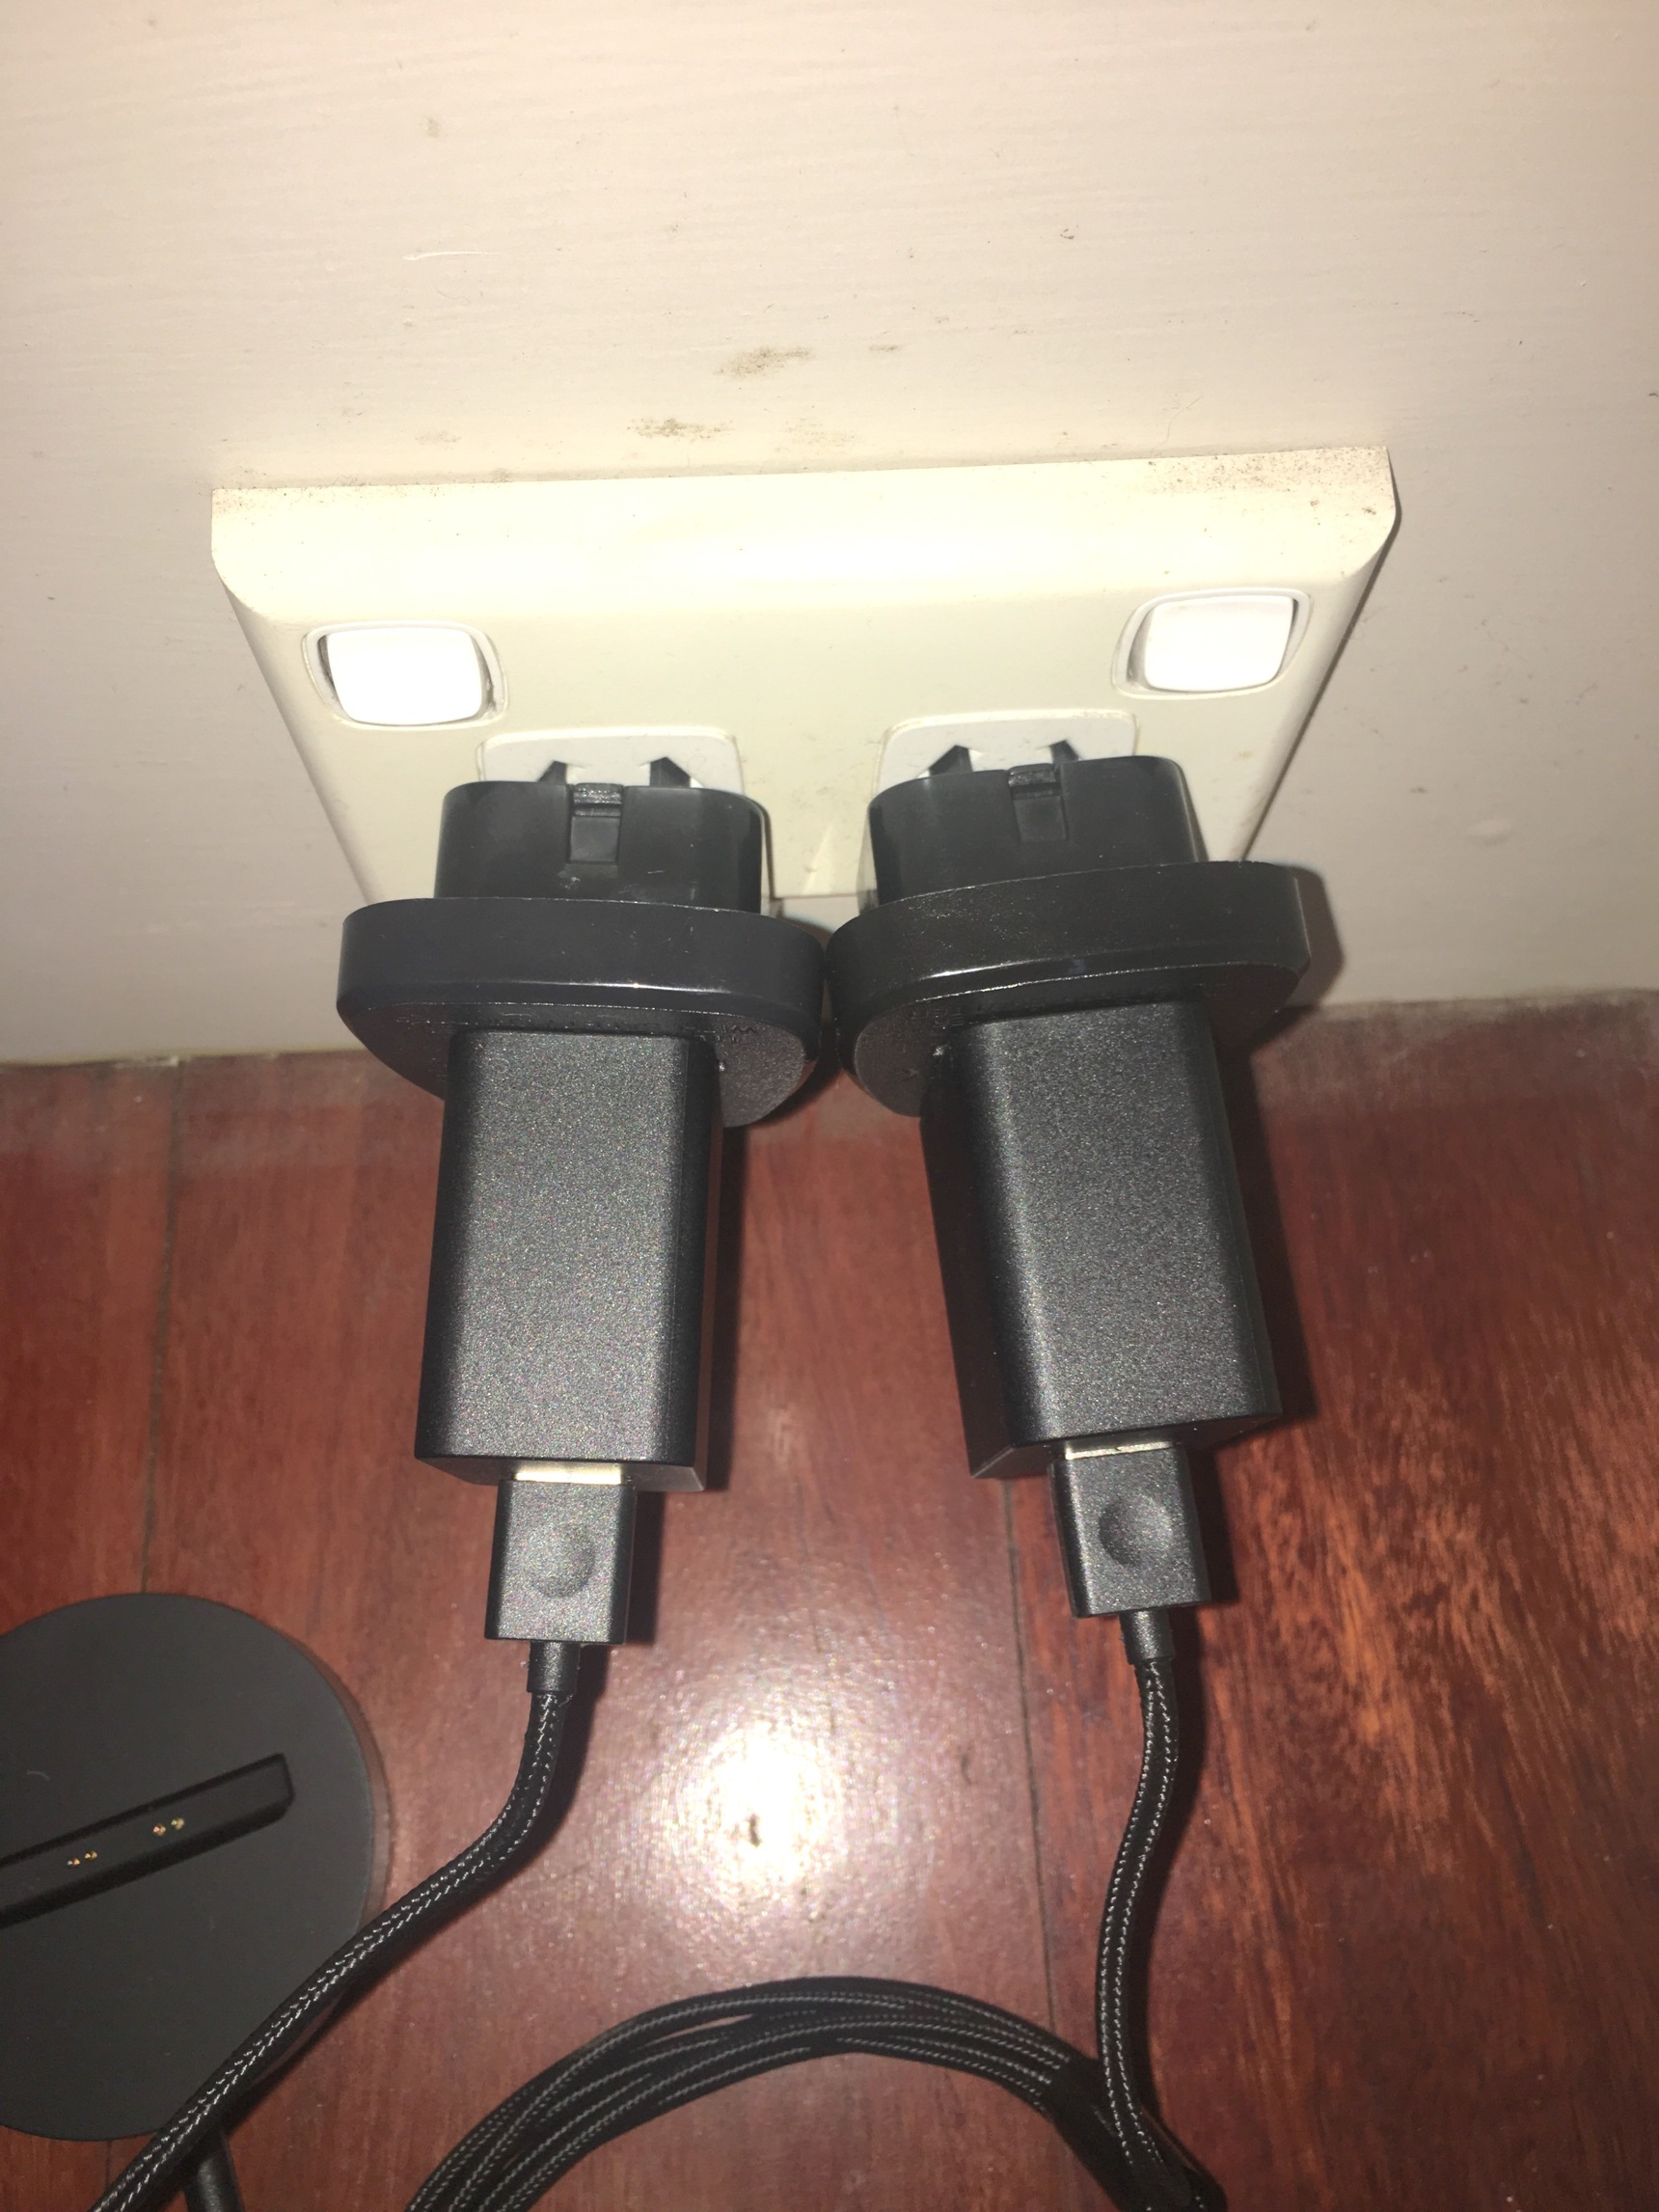 Australian Power Adaptors Are Woeful Neeo Remote Brain Planet Not Only Do We Get A Couple Of Ugly Cheap And Bulky To Add On The Default Chargers But You Cannot Actually Plug Them In Side By